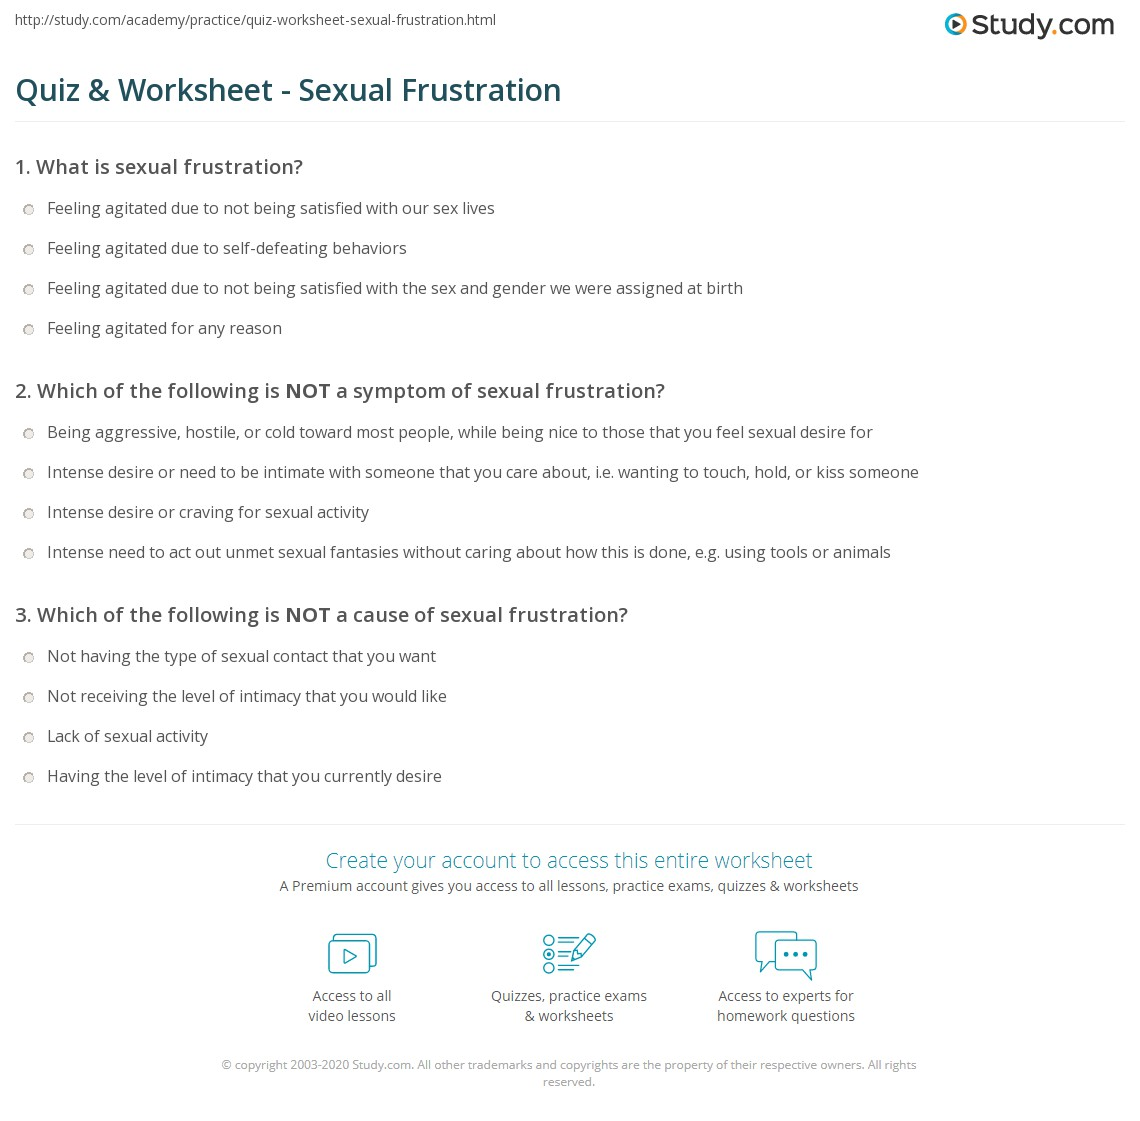 Sexual fantasy quiz